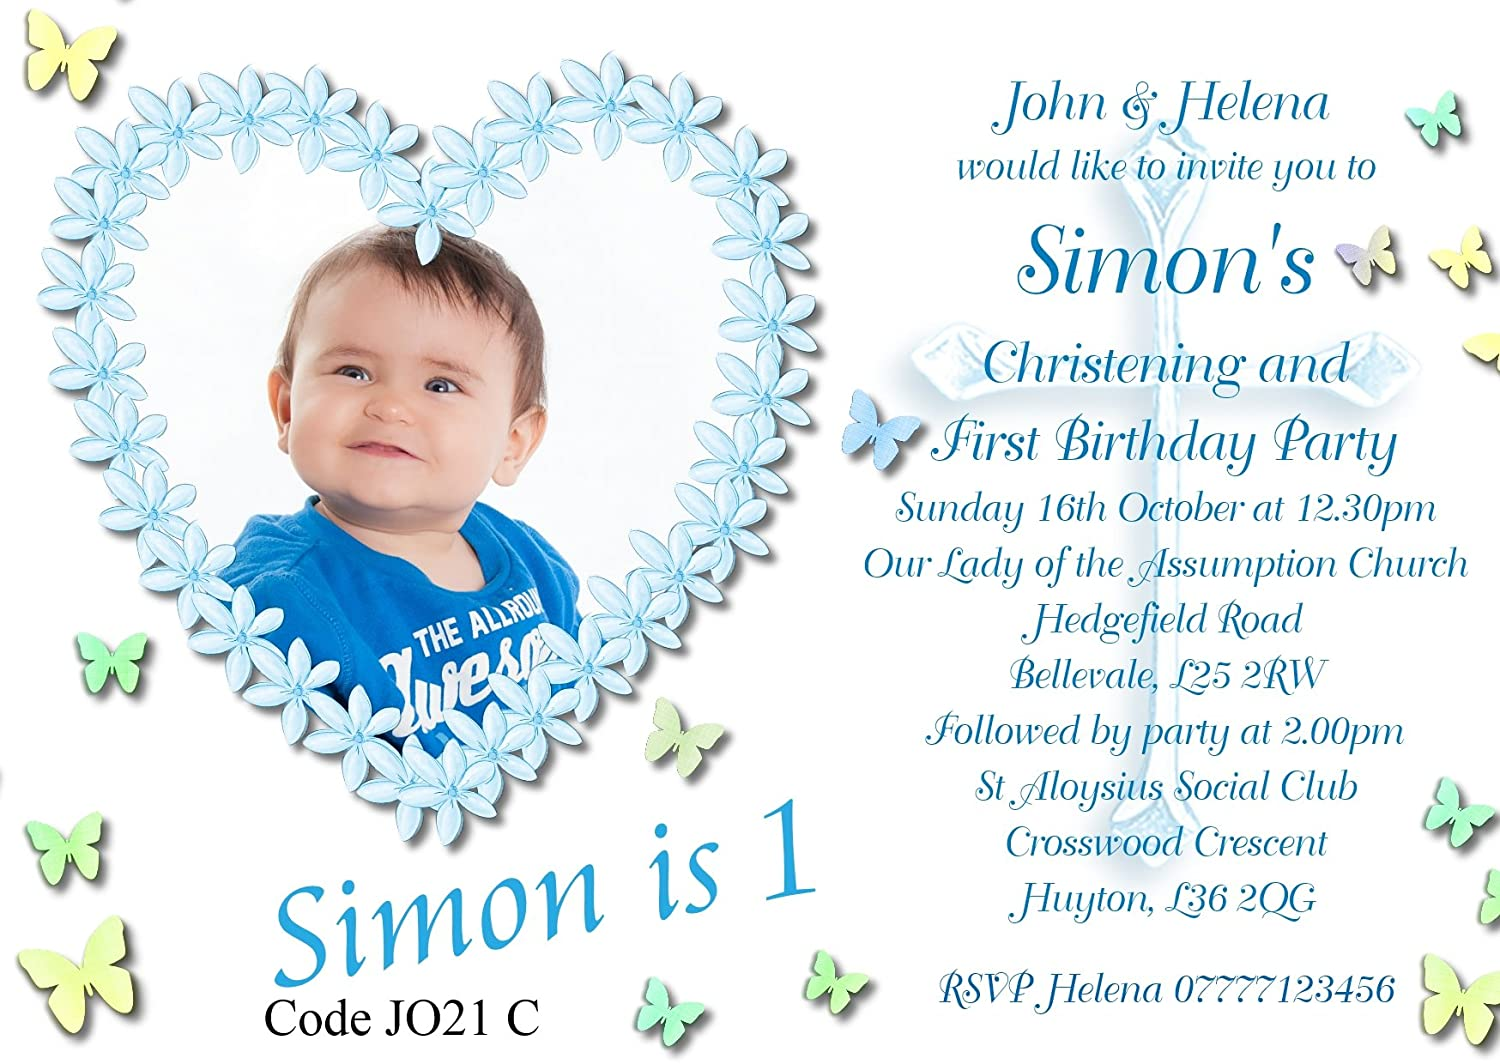 Personalised boys joint christening first birthday invitations personalised boys joint christening first birthday invitations cards size a6 148mm x 105mm any age with free envelopes various quantities available kristyandbryce Choice Image